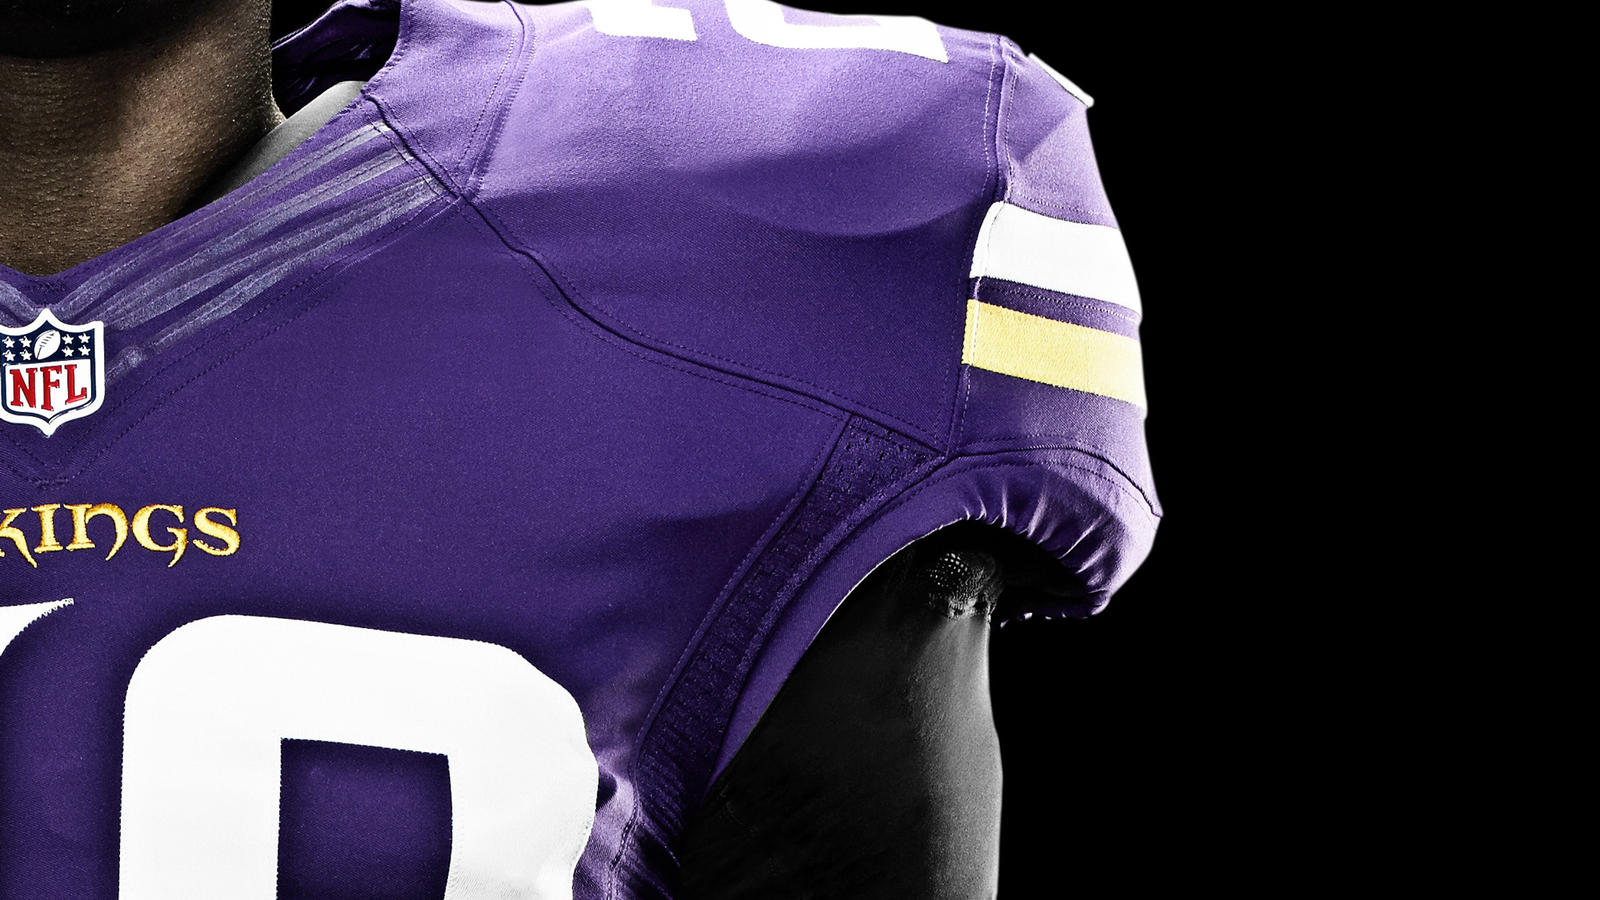 peterson-vikings-nfl-nike-elite-51-uniform-detail1